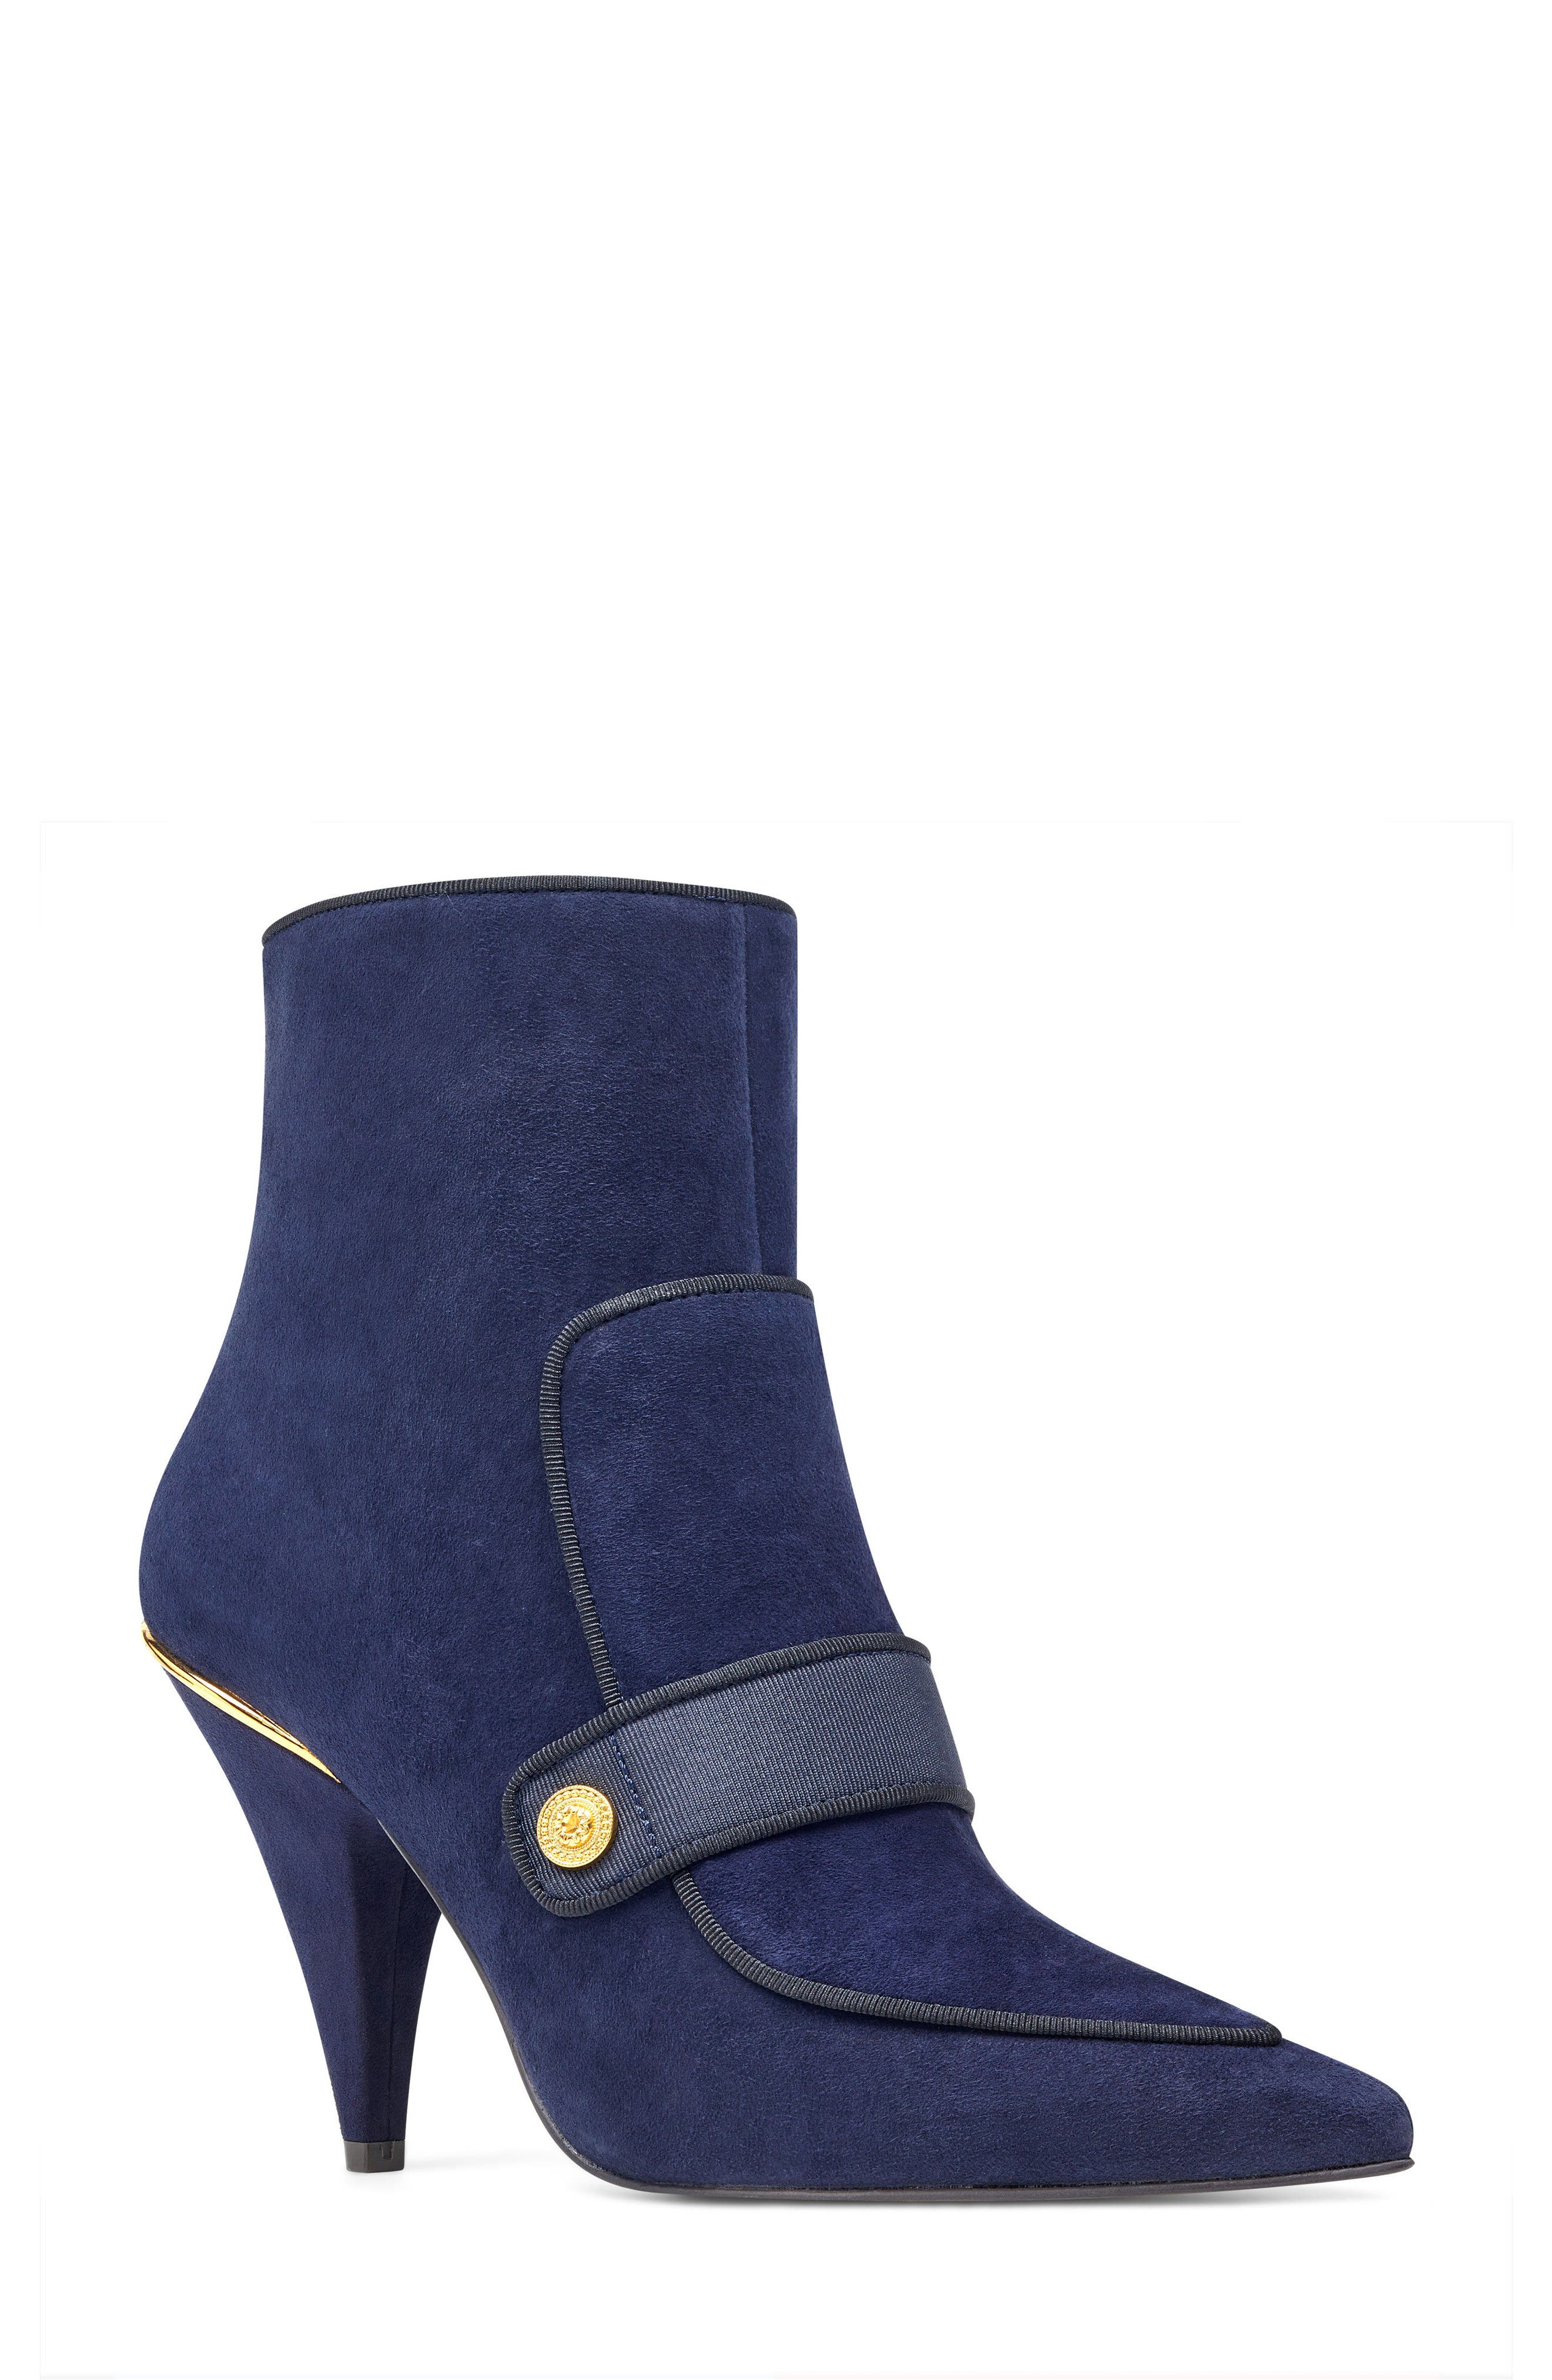 Westham Pointy Toe Bootie,                             Main thumbnail 1, color,                             Navy/ Black Suede